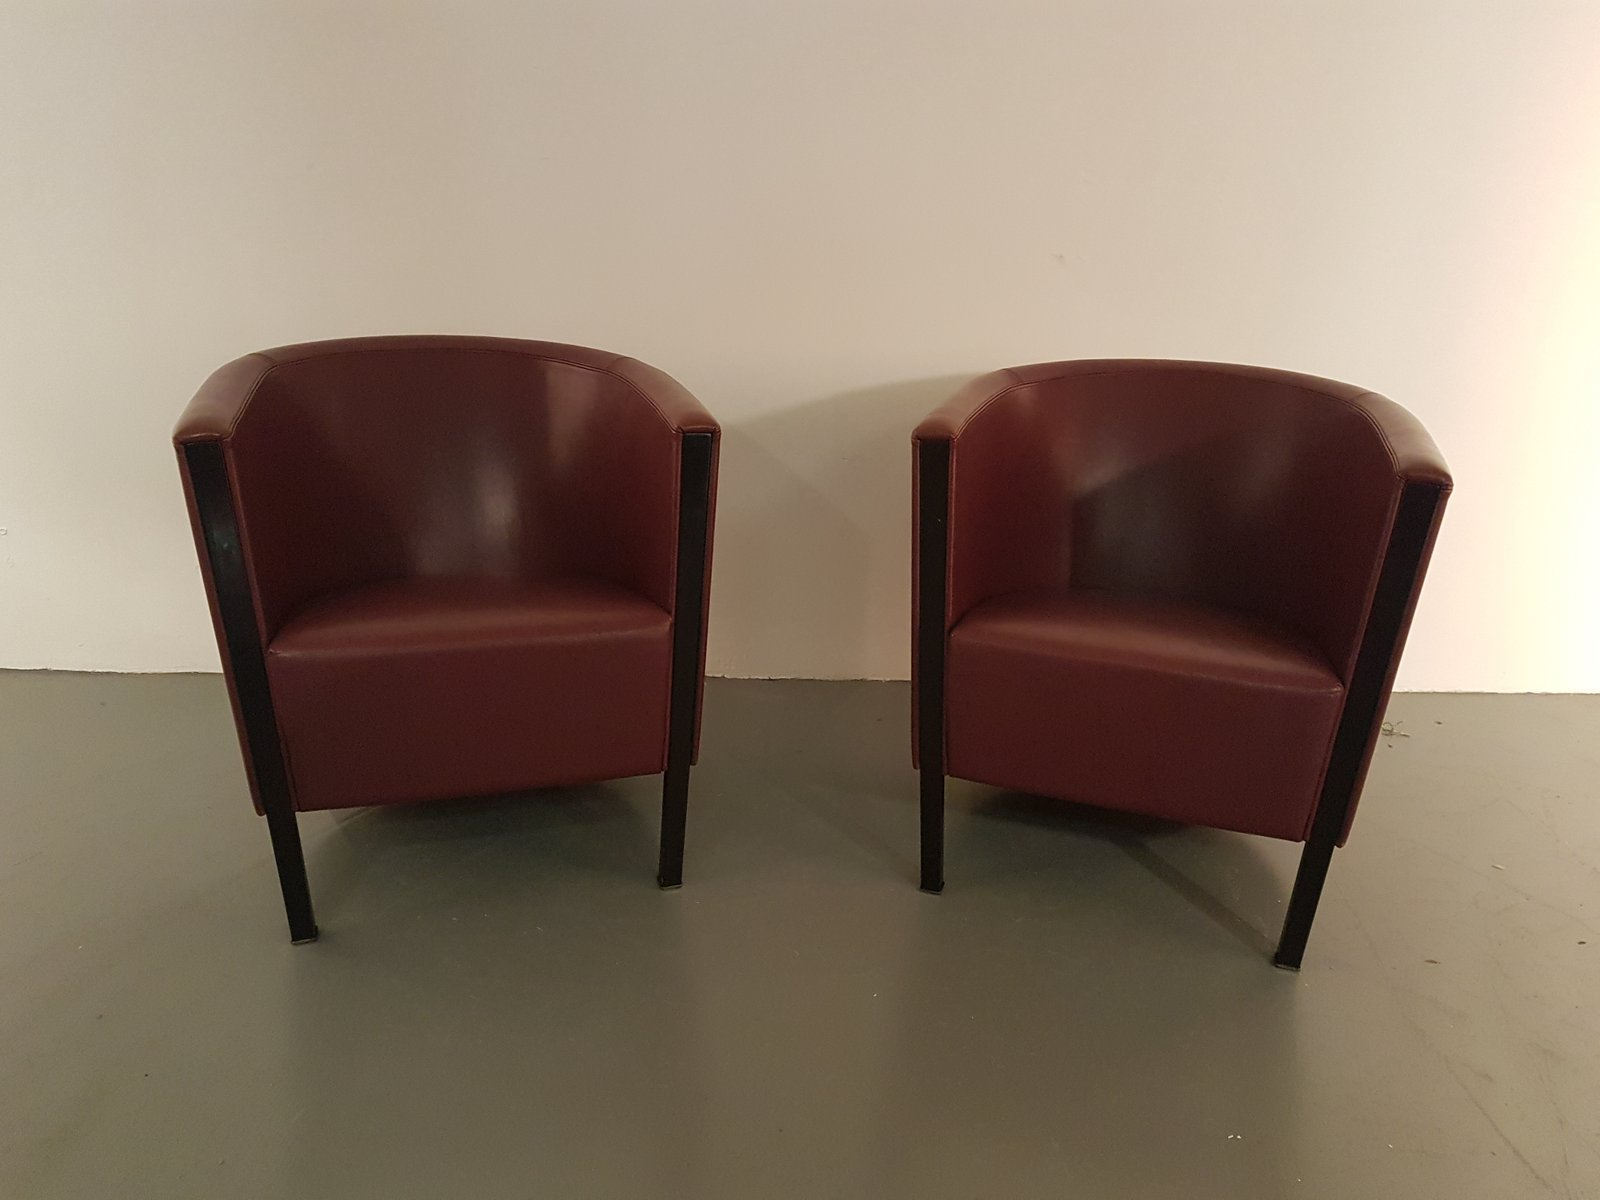 italian club lounge chairs from moroso 1993 set of 2 for sale at pamono. Black Bedroom Furniture Sets. Home Design Ideas